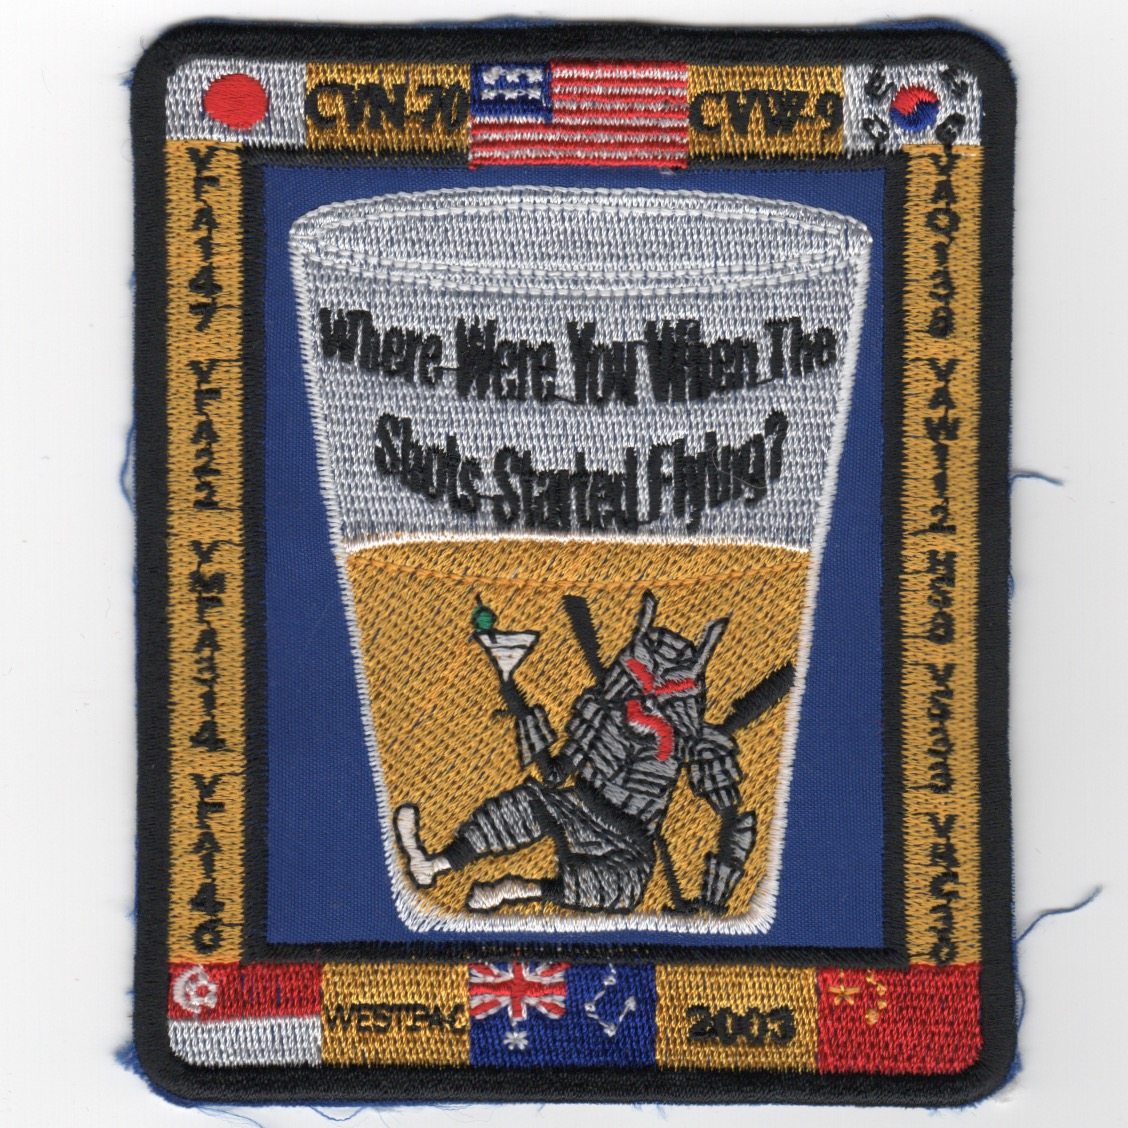 486) CVN-70/CVW-9 2003 WESTPAC/OEF Patch